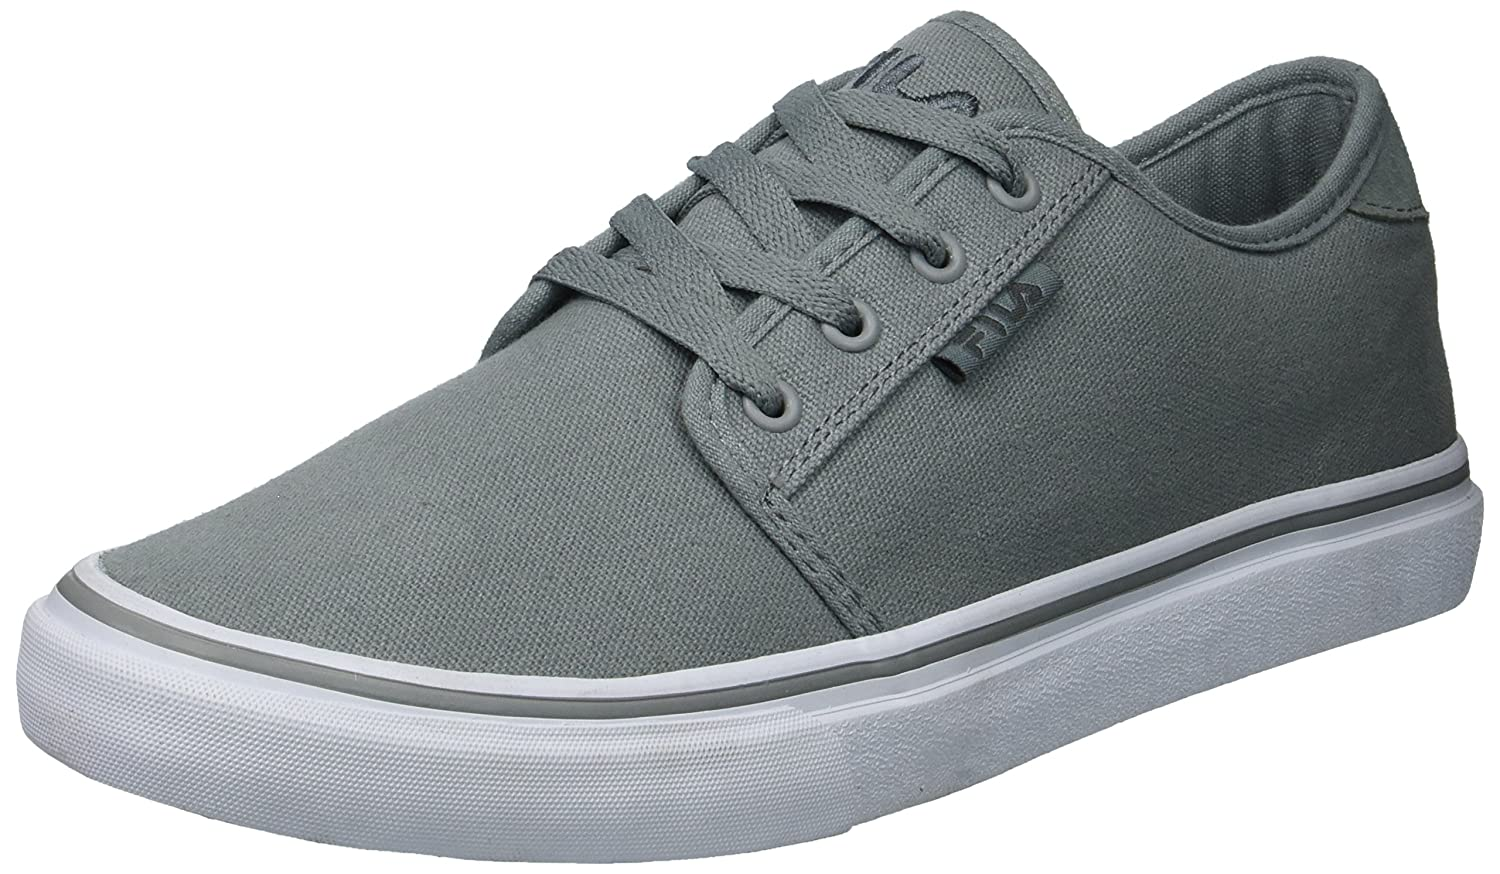 Fila Men's Easterly Canvas Walking Shoe 8.5 D(M) US|Monument/Pewter/White